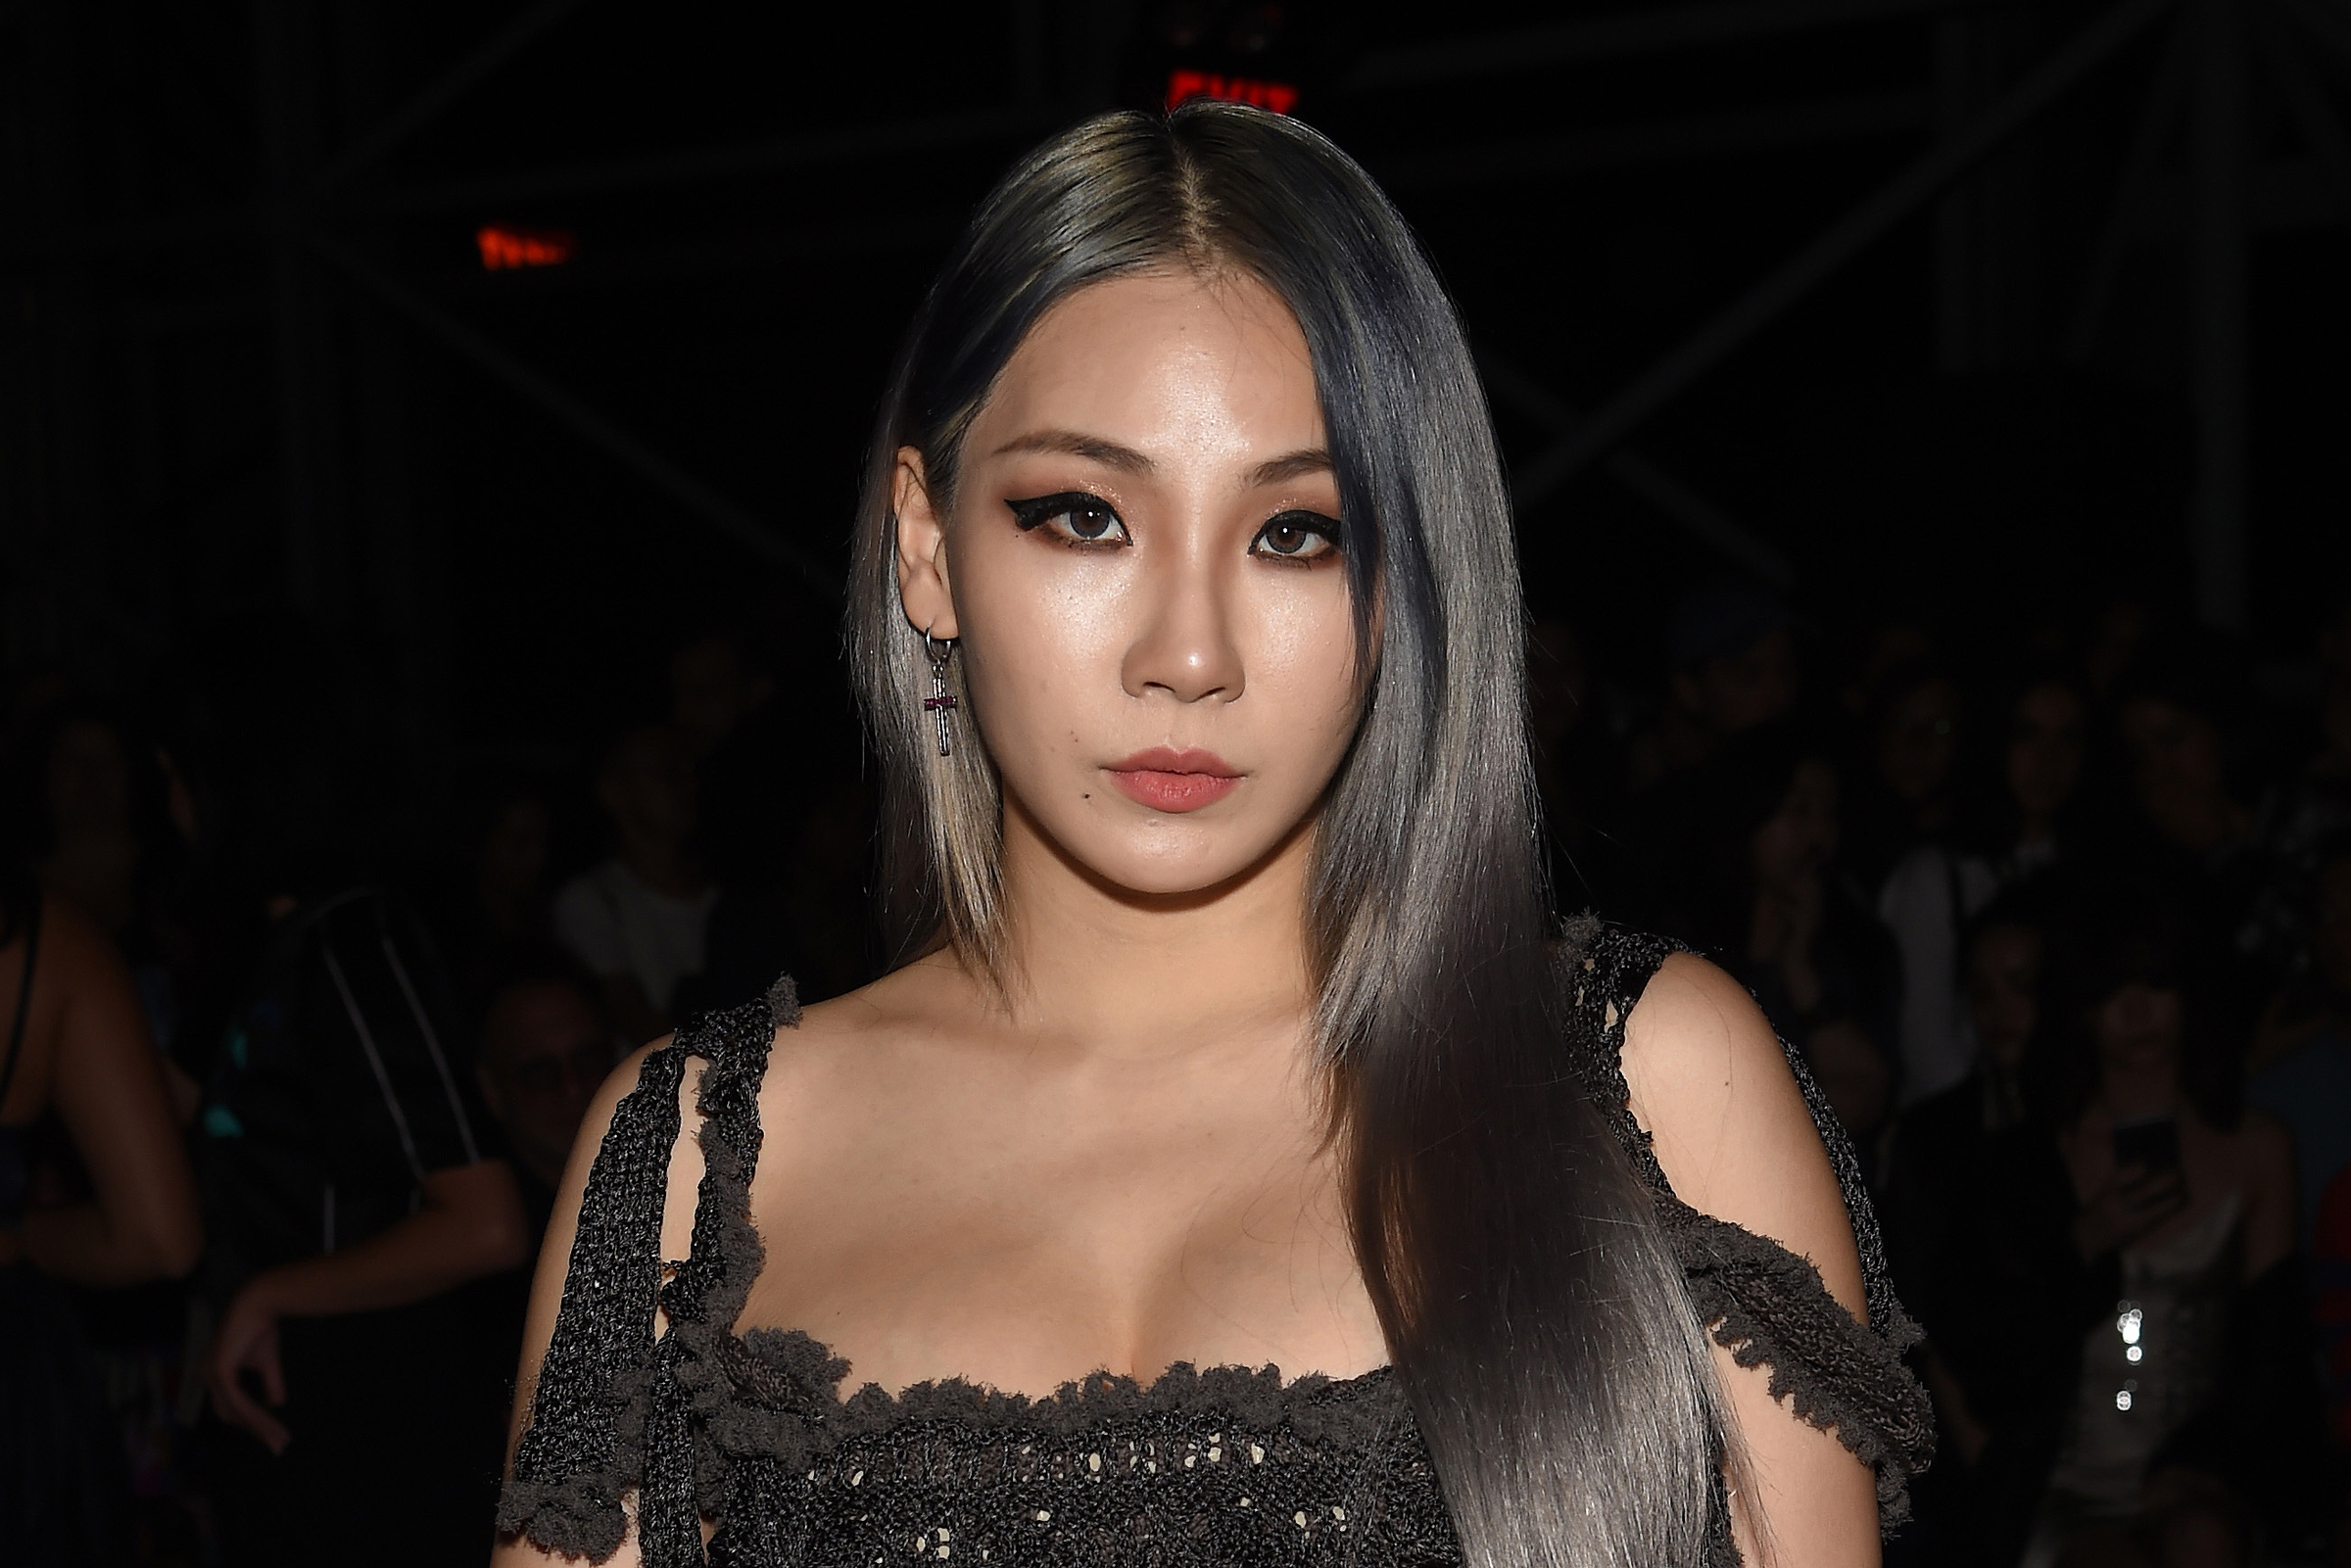 CL, 'DONE161201': Song You Need to Know - Rolling Stone